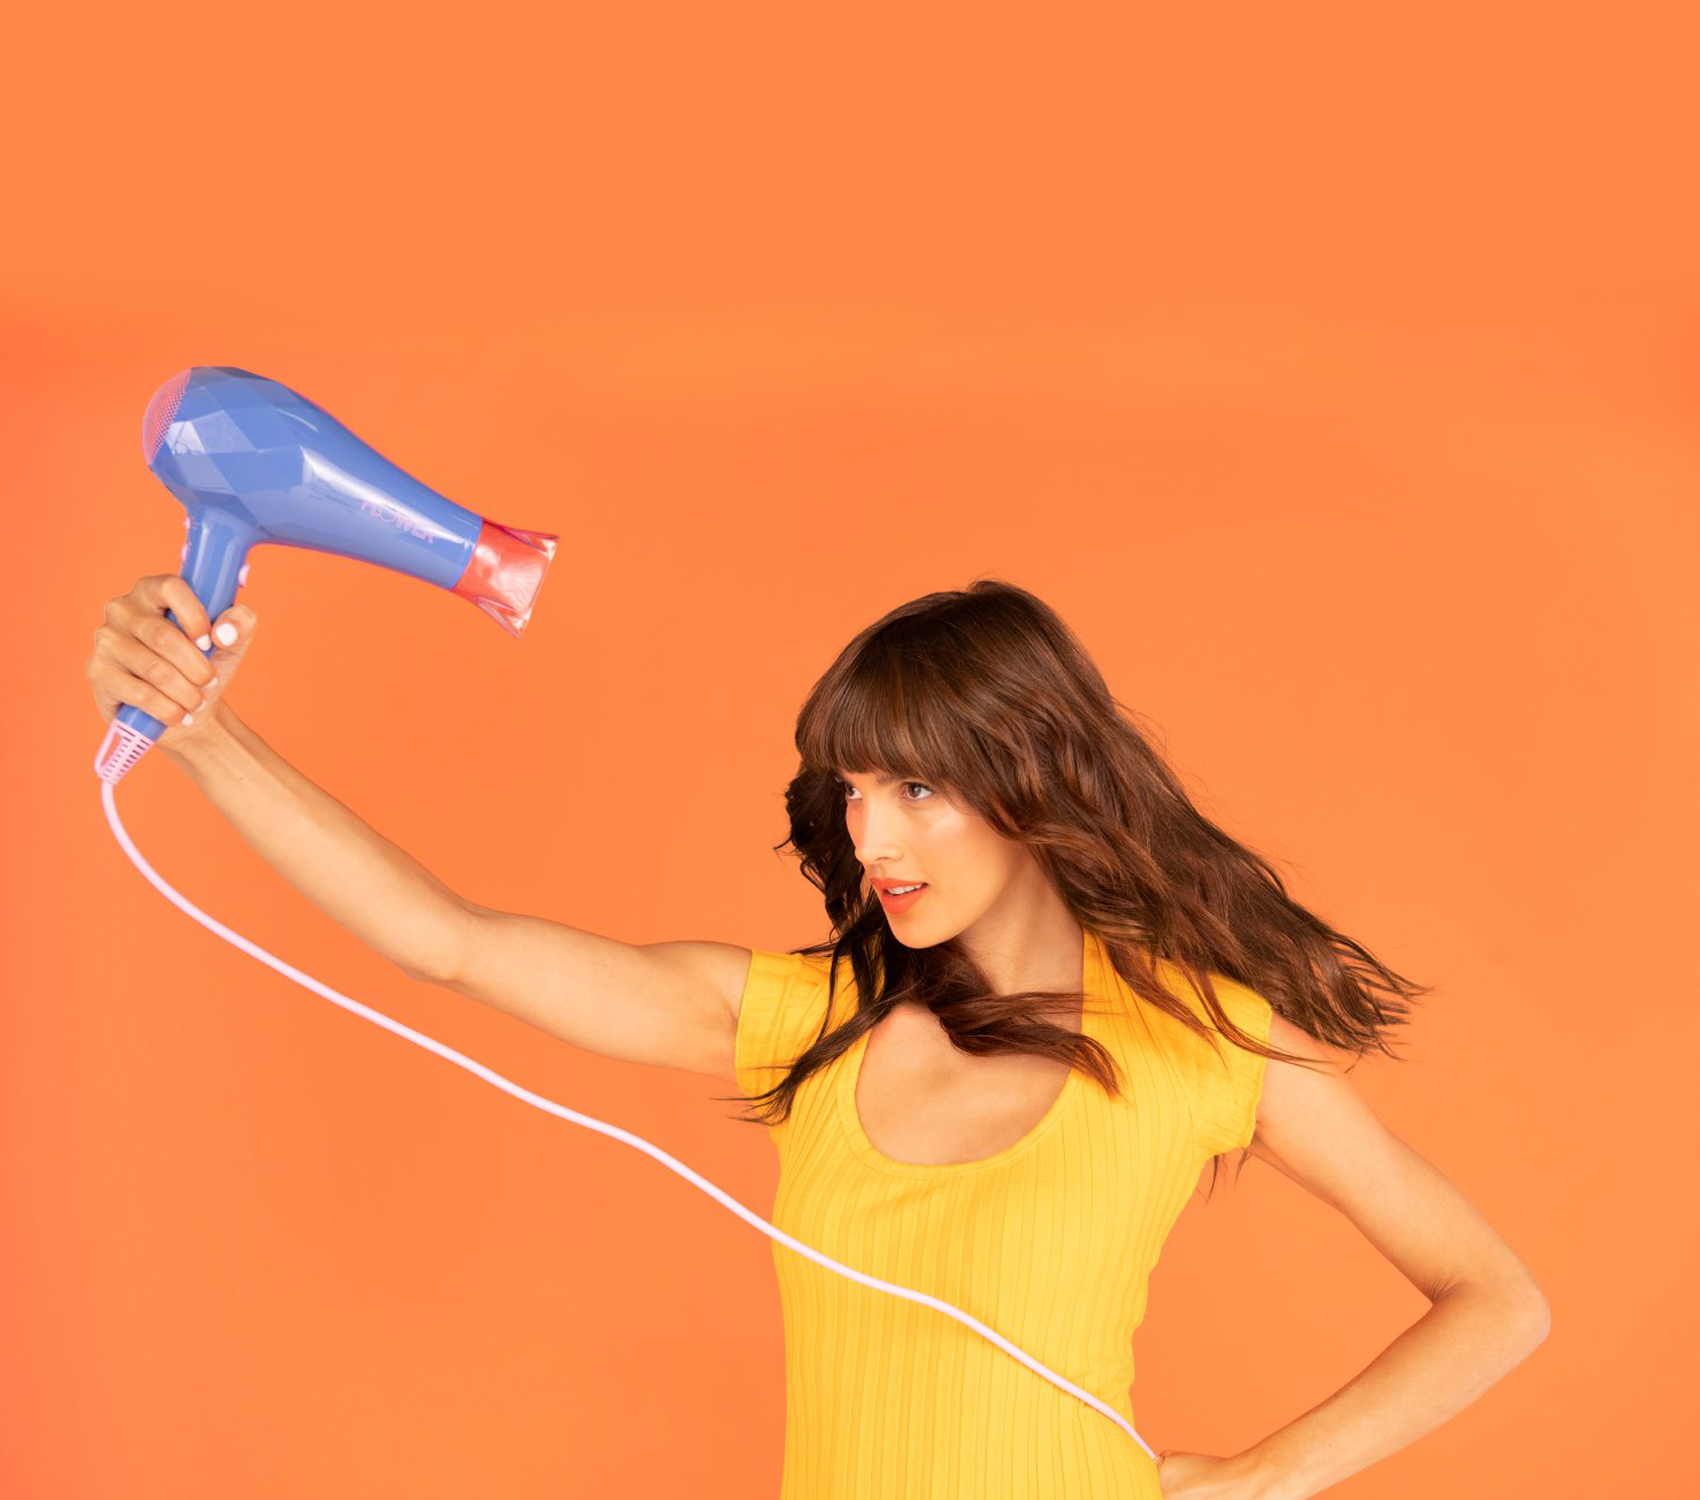 A woman holding the Ionic Pro Dryer over her head